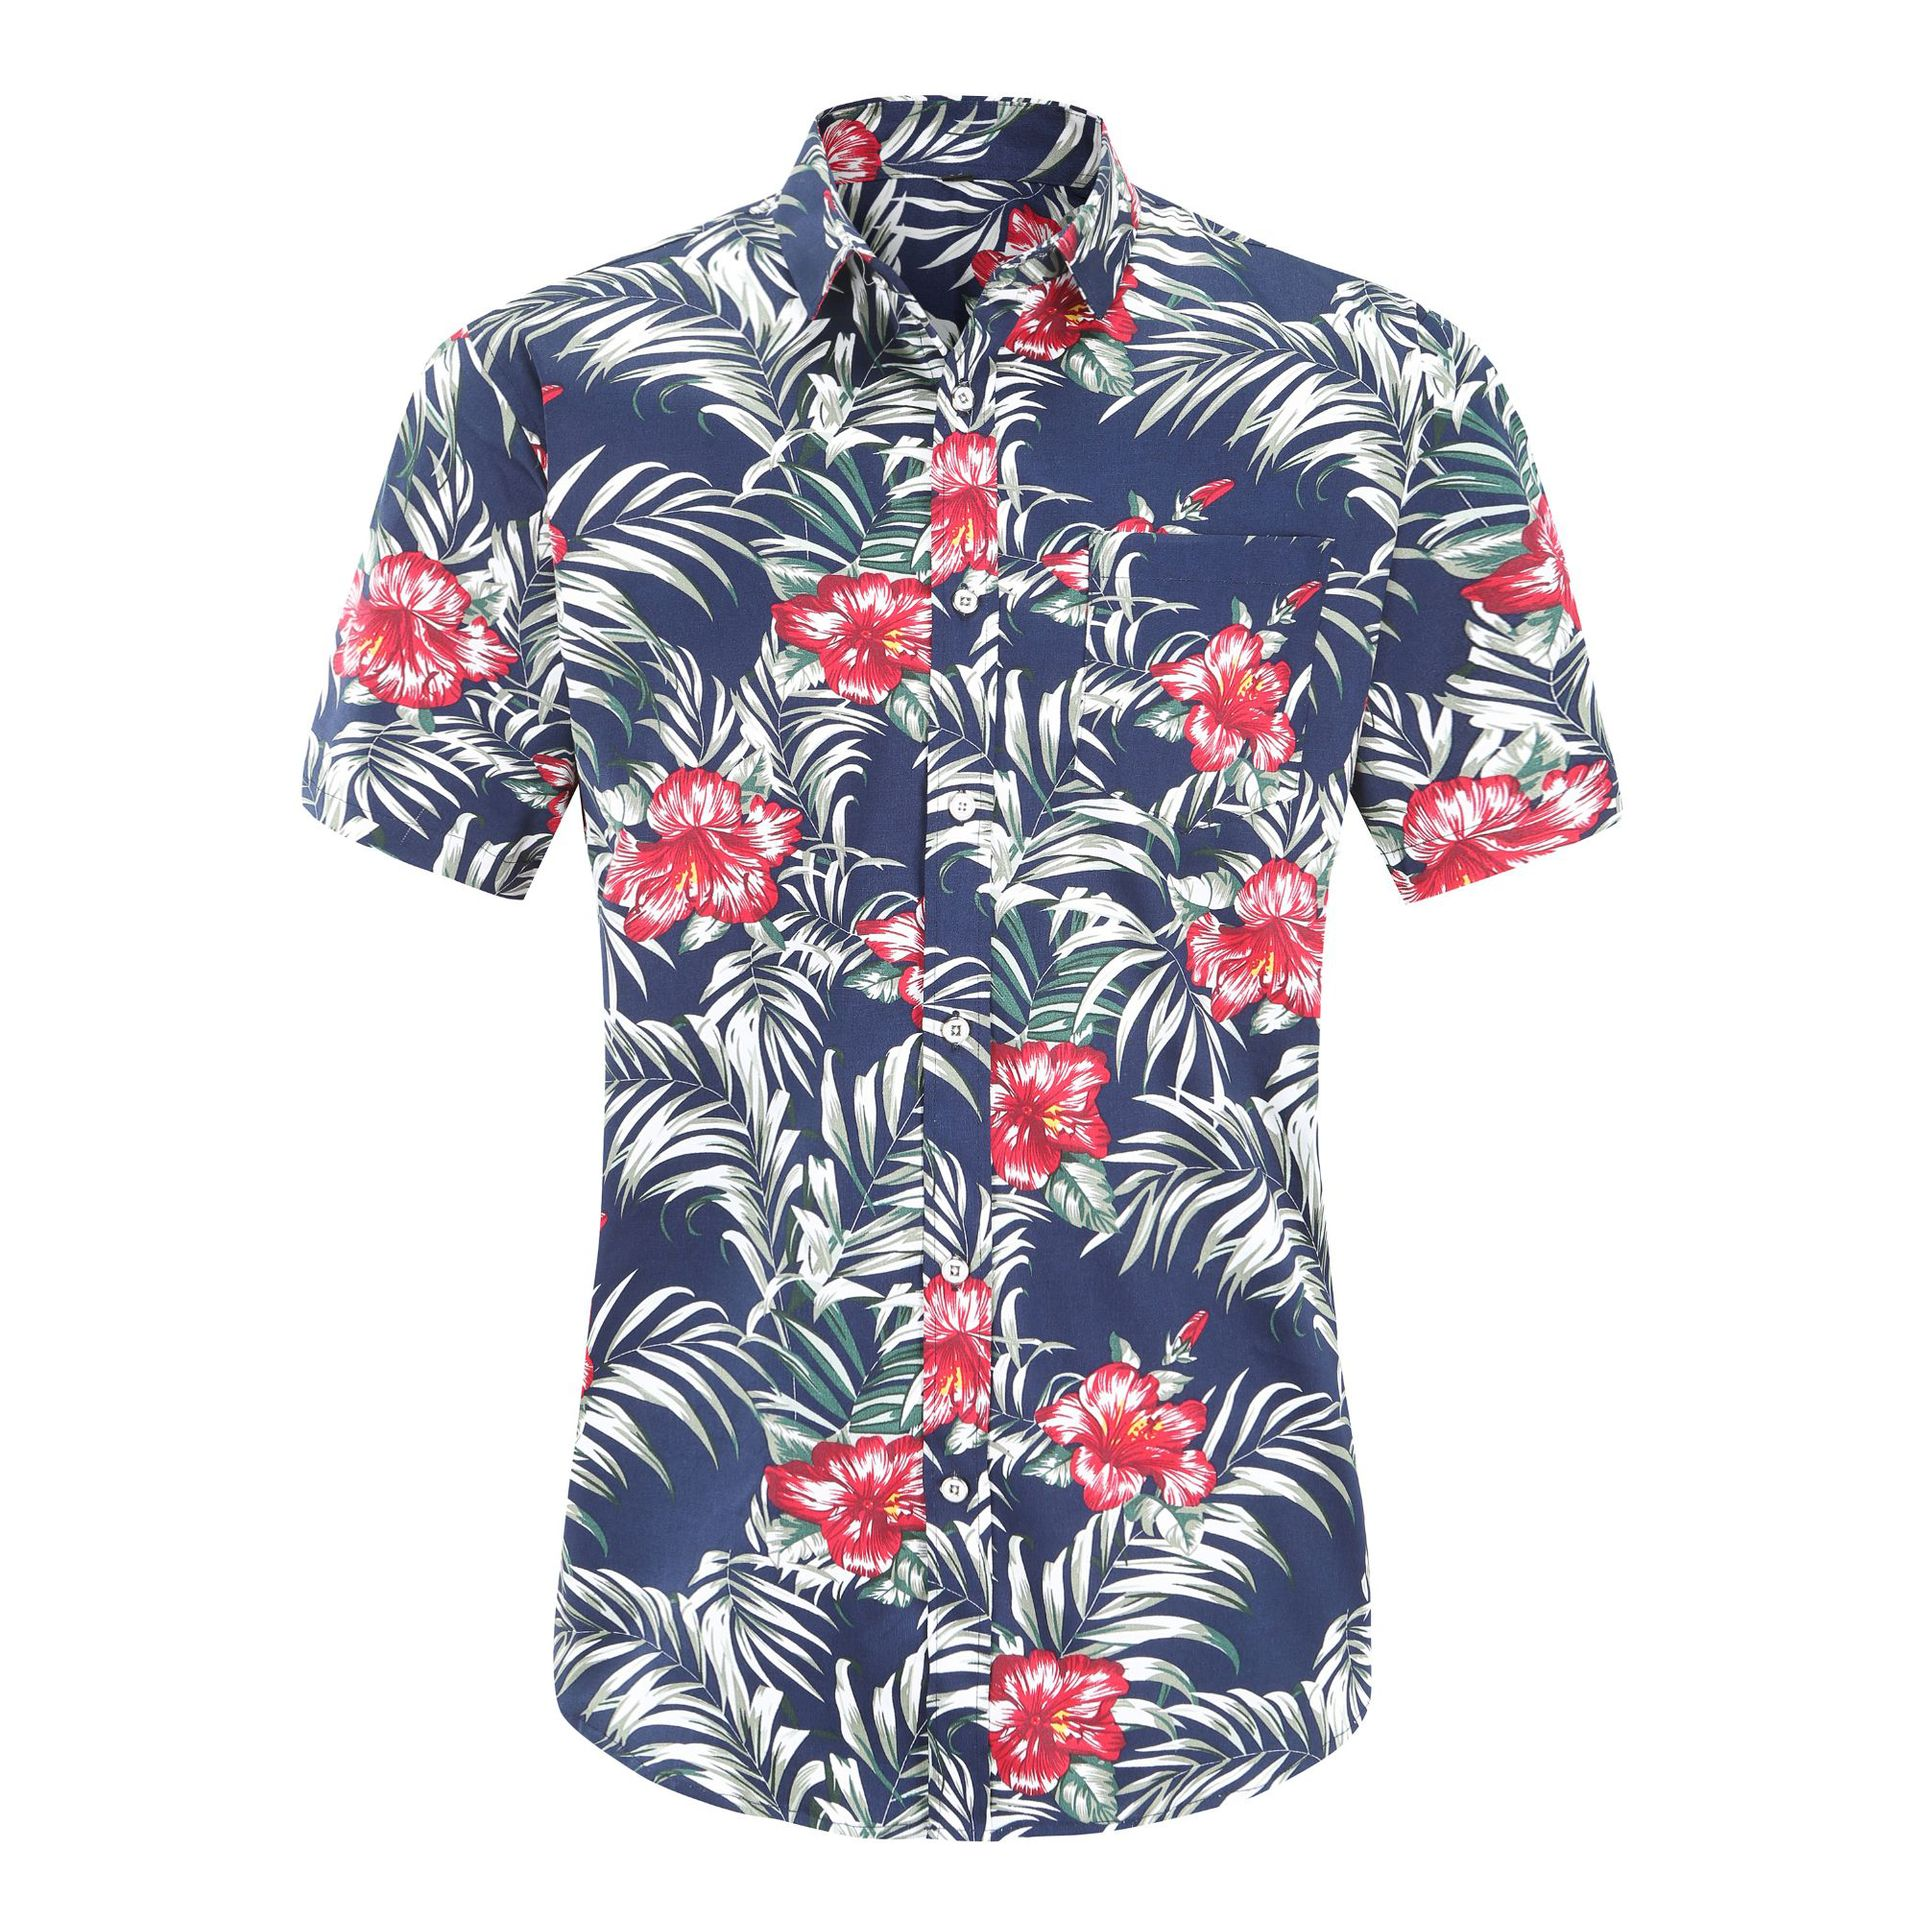 Jeetoo 2019 New Men's Slim Fit Flower Printed Shirts Male Short Sleeve Floral Shirt Men Basic Tops Casual Shirts Plus Size 3XL